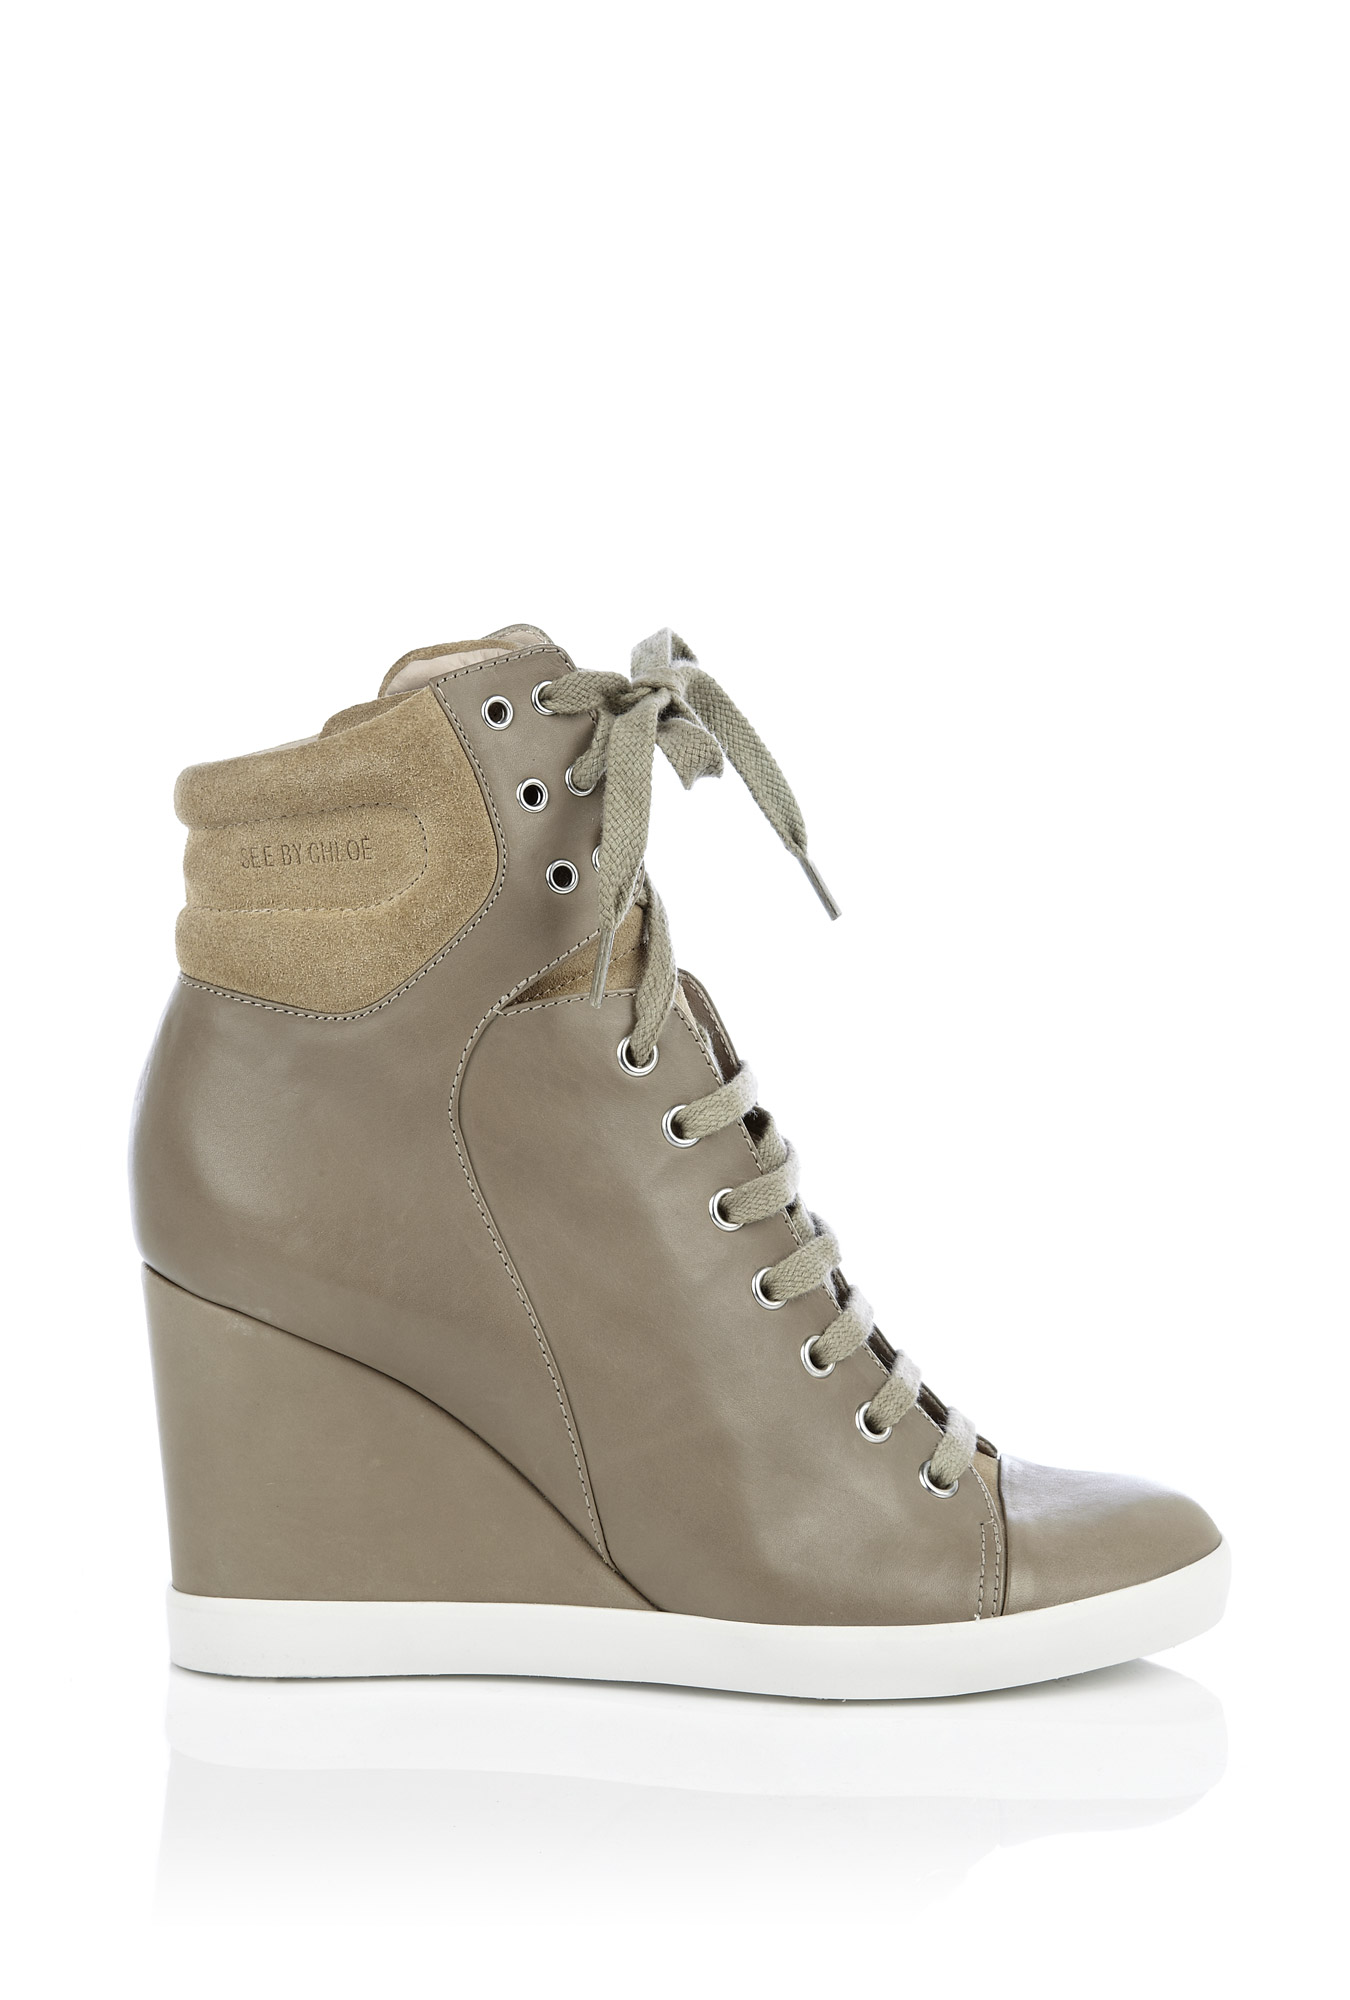 Beige leather & velour wedge trainer by see by chloe shoes